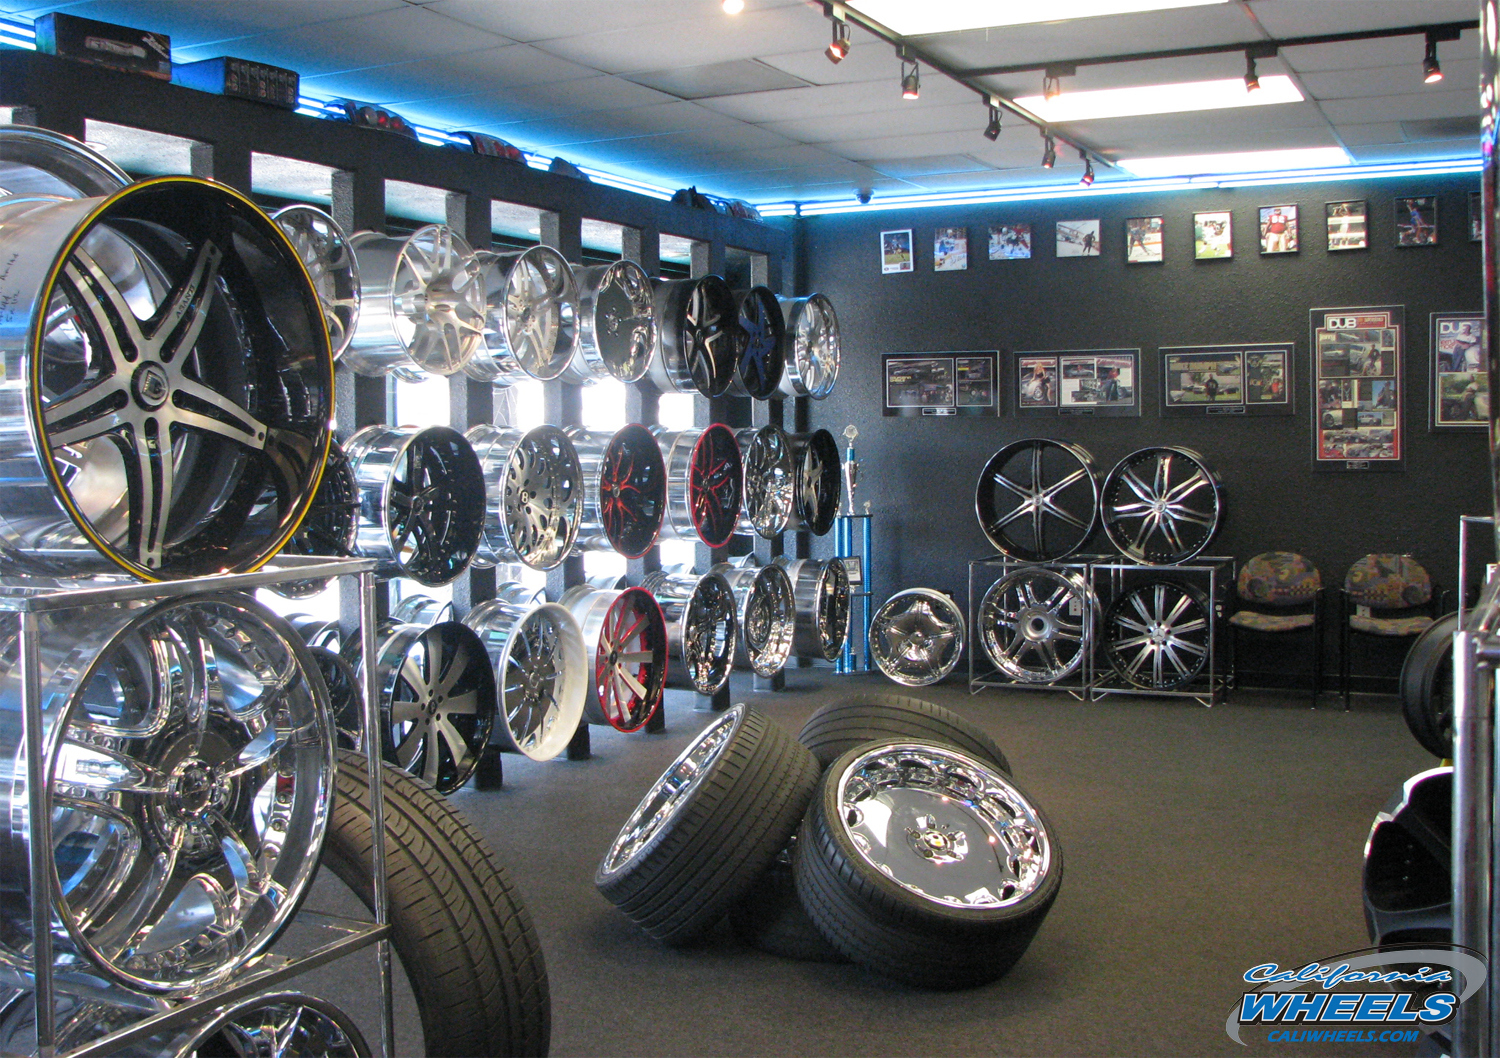 Truck Lift Shops >> Car | California Wheels San Jose Shop on Wheels | California Wheels